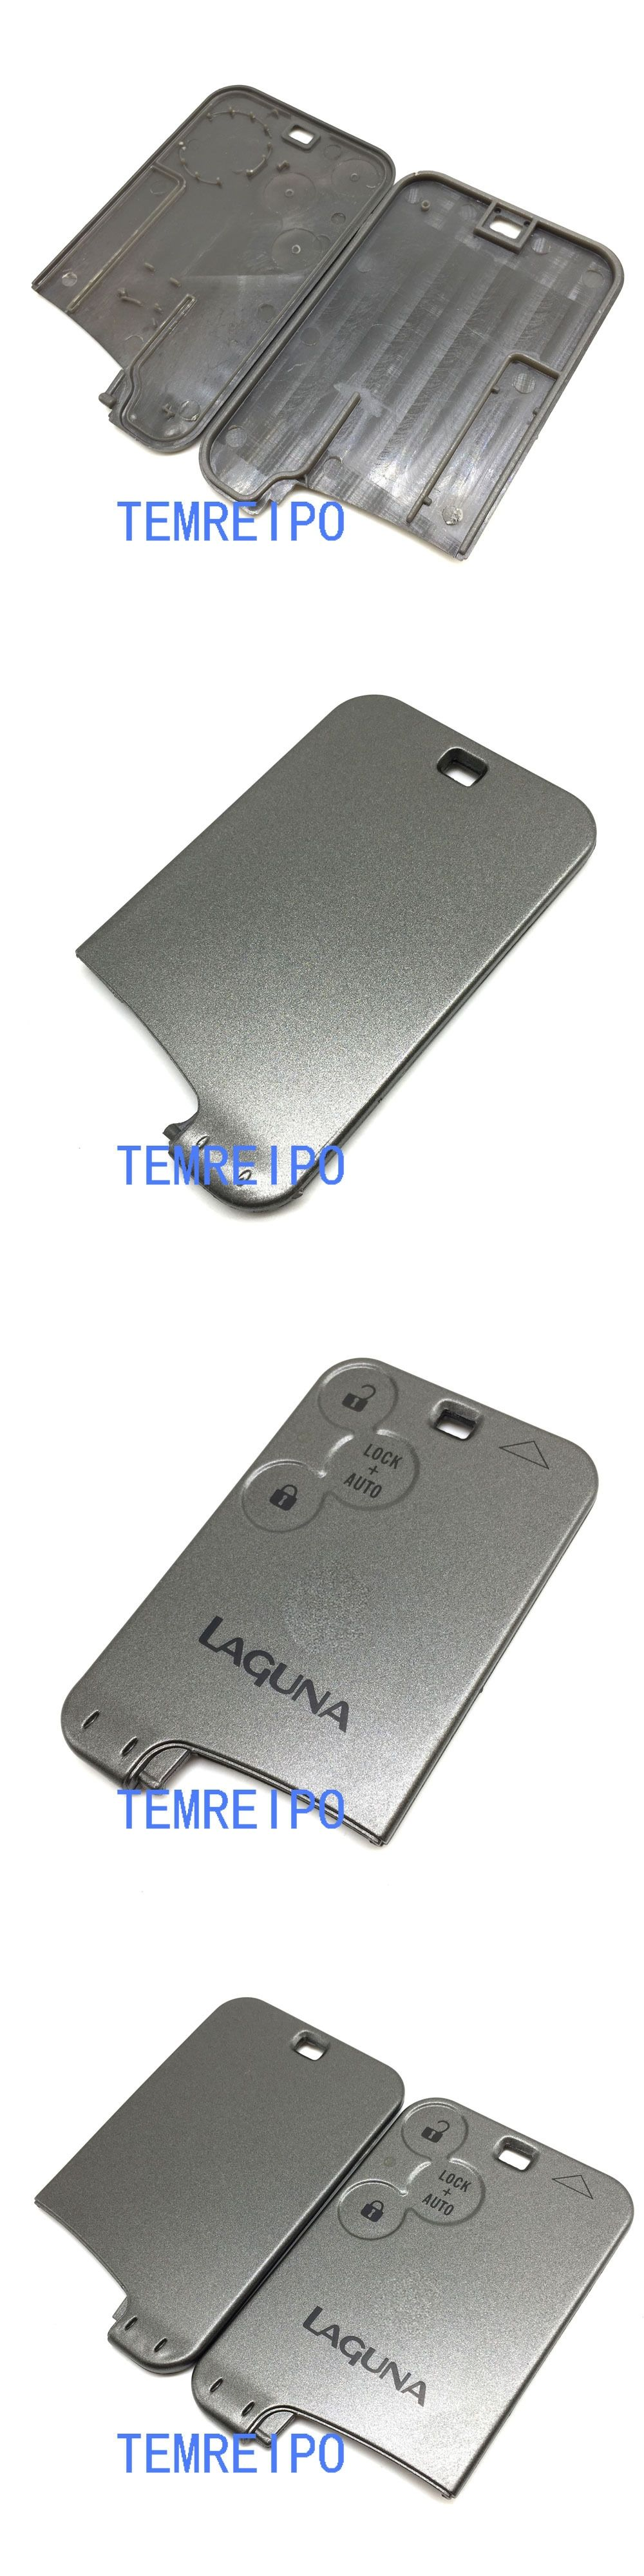 3 Button Remote Car Key Shell Replacement For Renault Laguna Smart